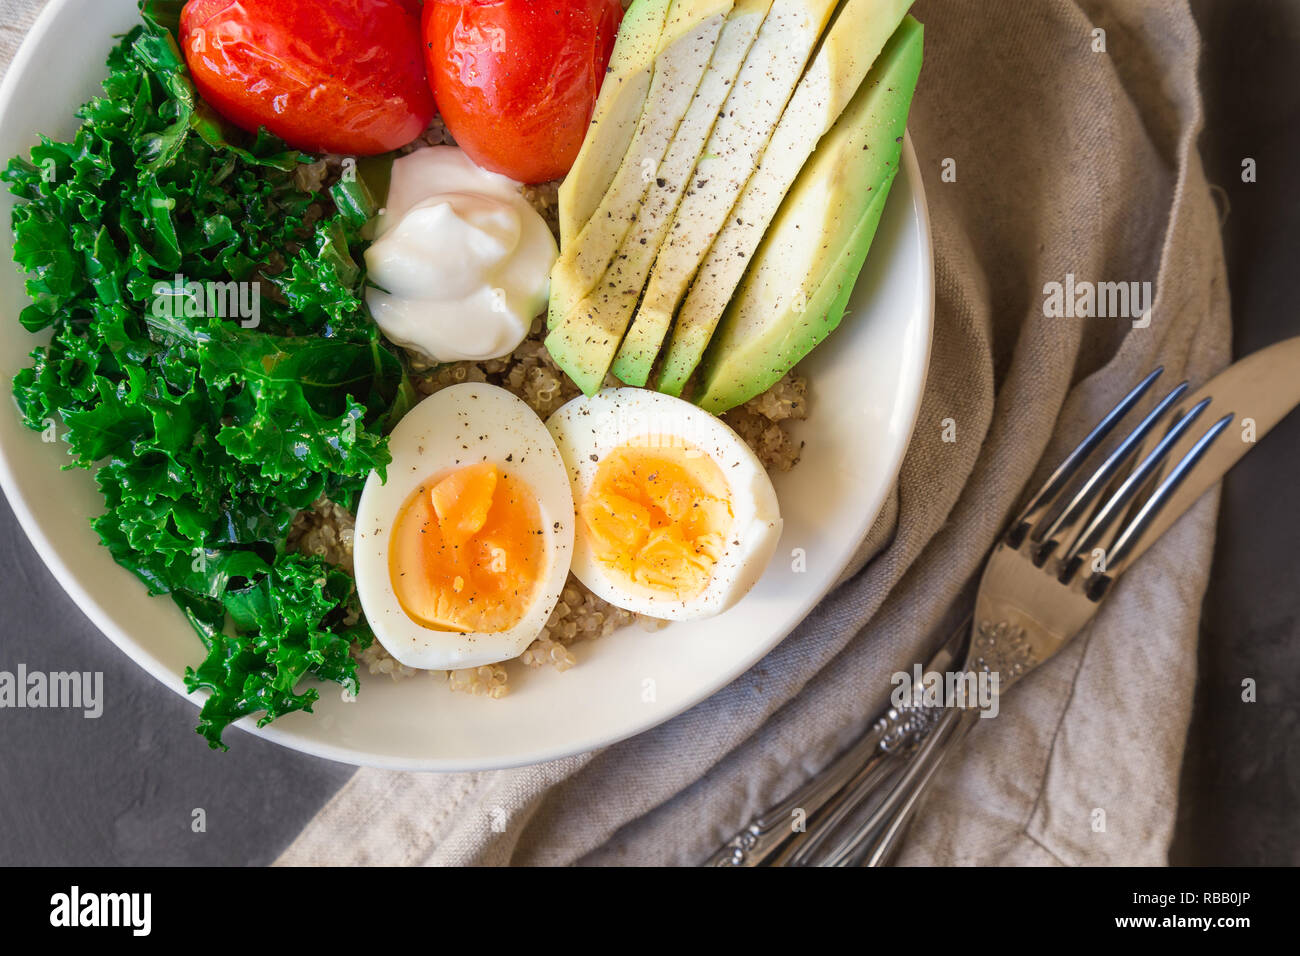 Quinoa buddha bowl with baked tomatoes, avocado, kale, boiled eggs and greek yogurt on gray concrete background. Healthy breakfast. Top view. - Stock Image